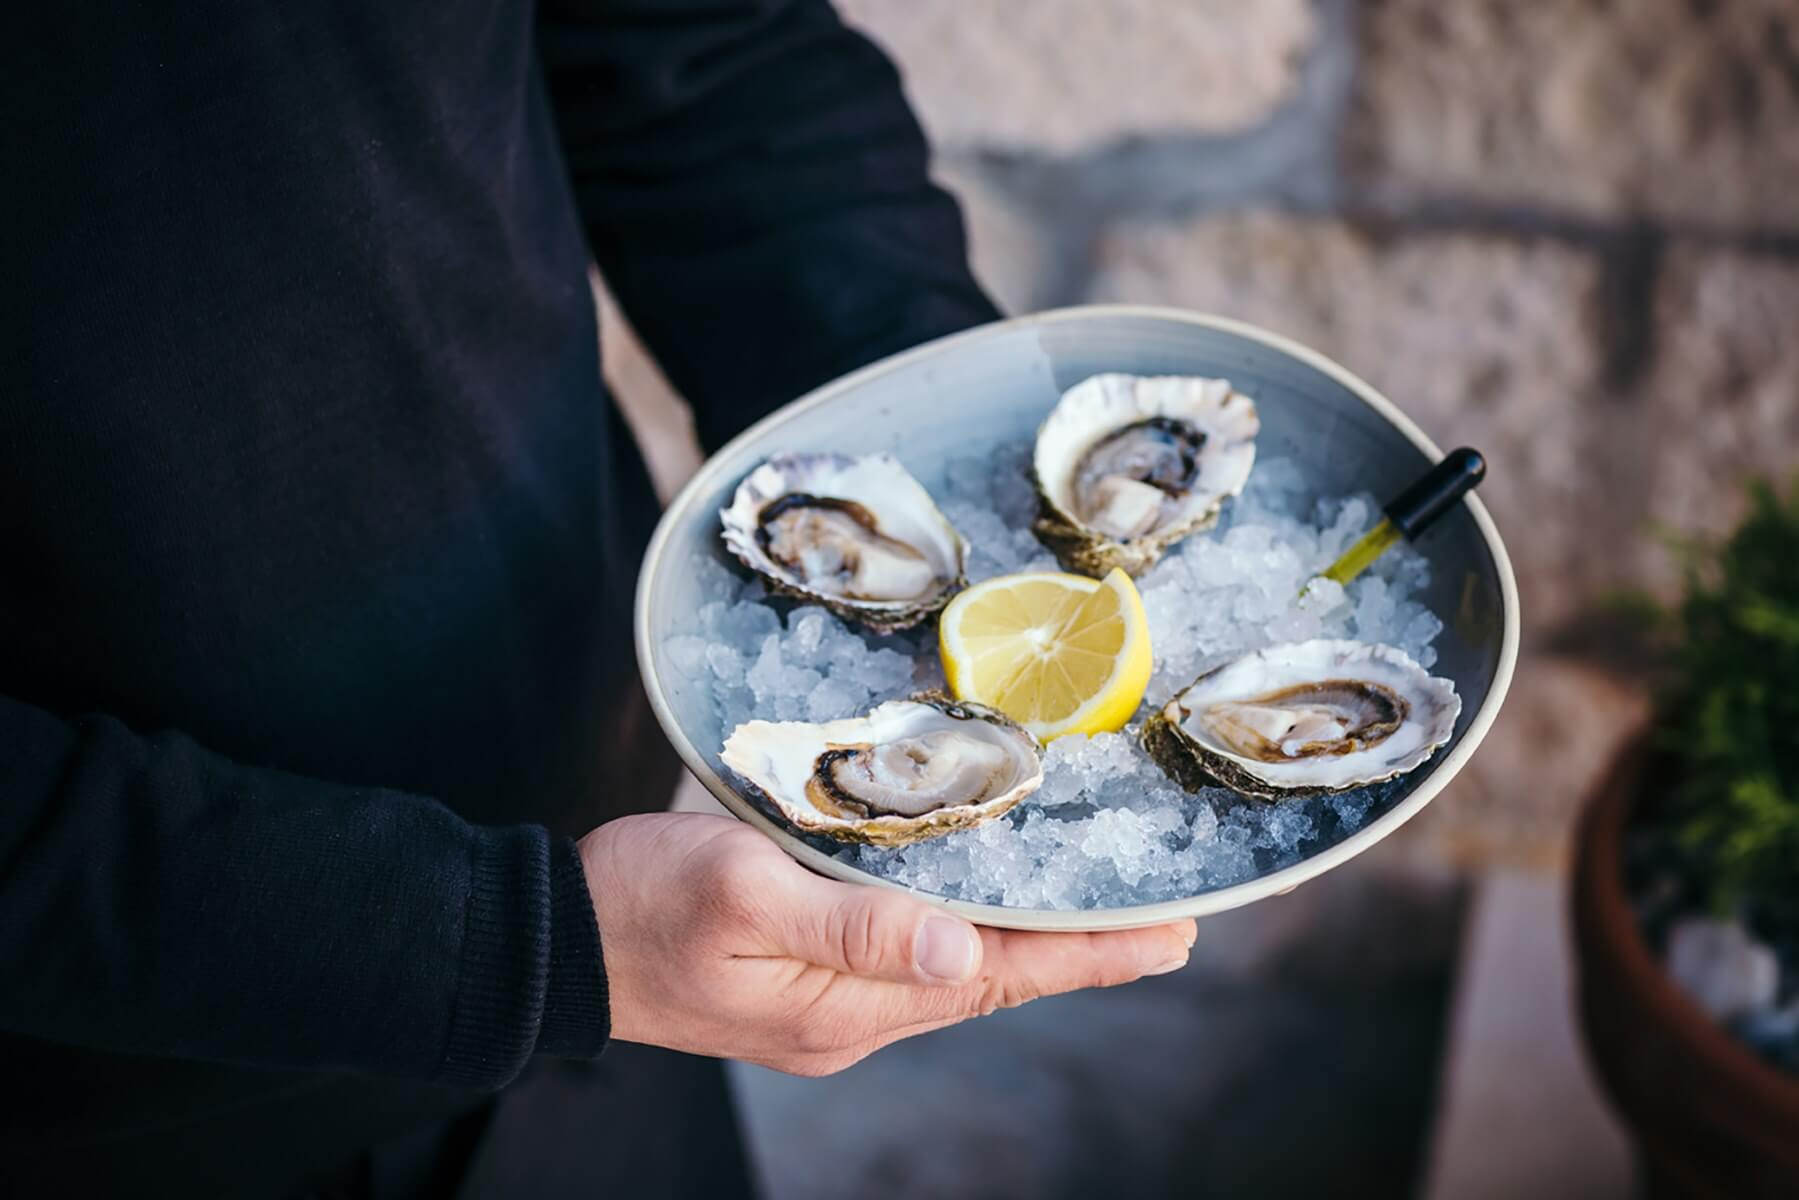 Oysters are harvested for generations is Dubrovnik region